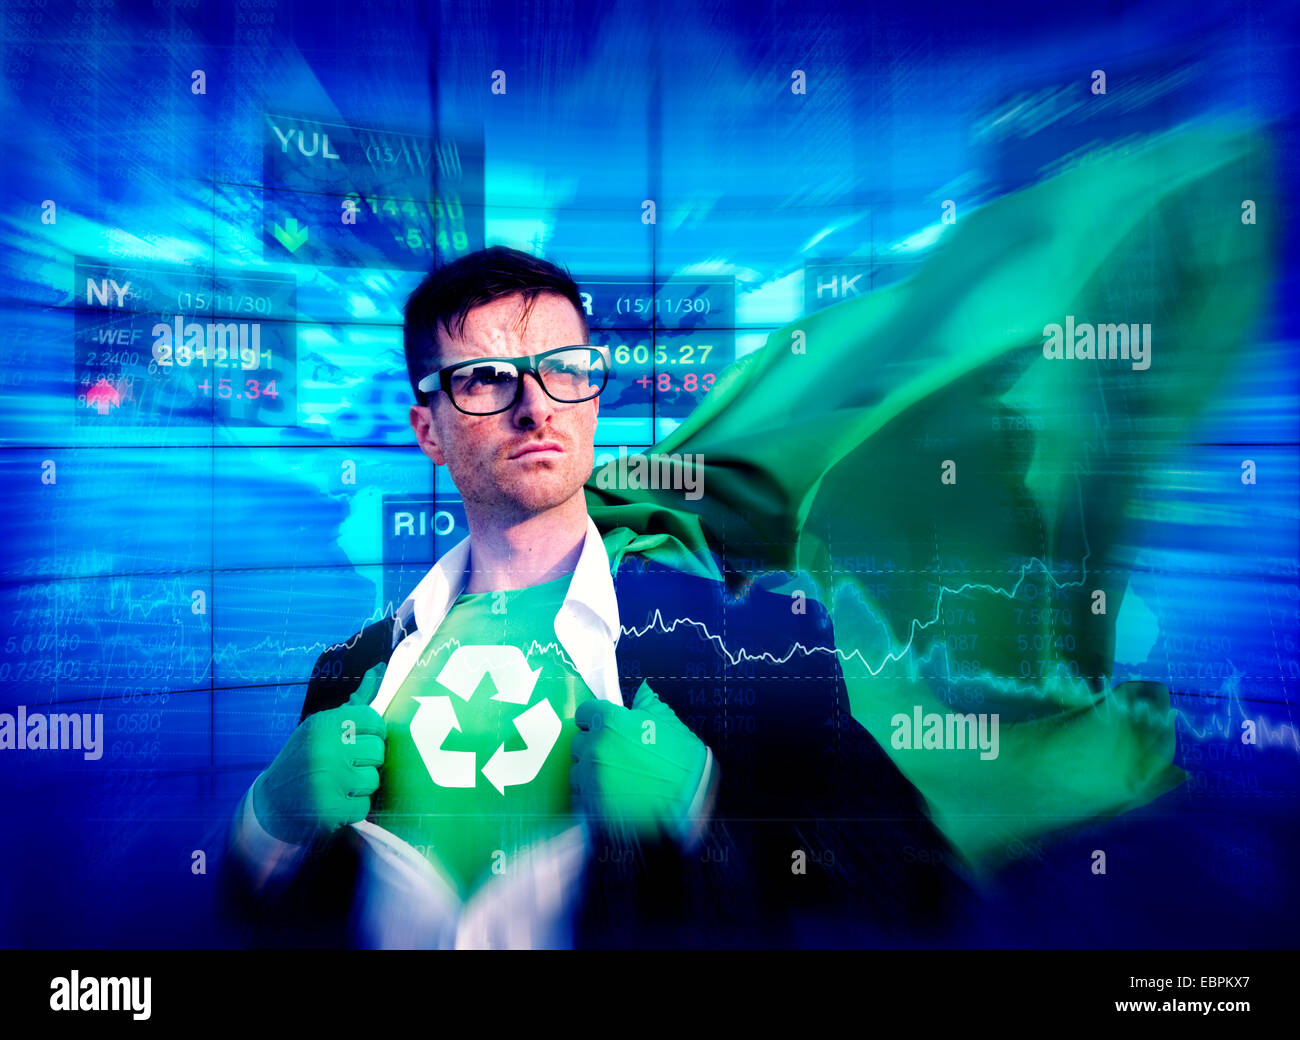 Recycle Strong Superhero Success Professional Empowerment Stock Concept - Stock Image